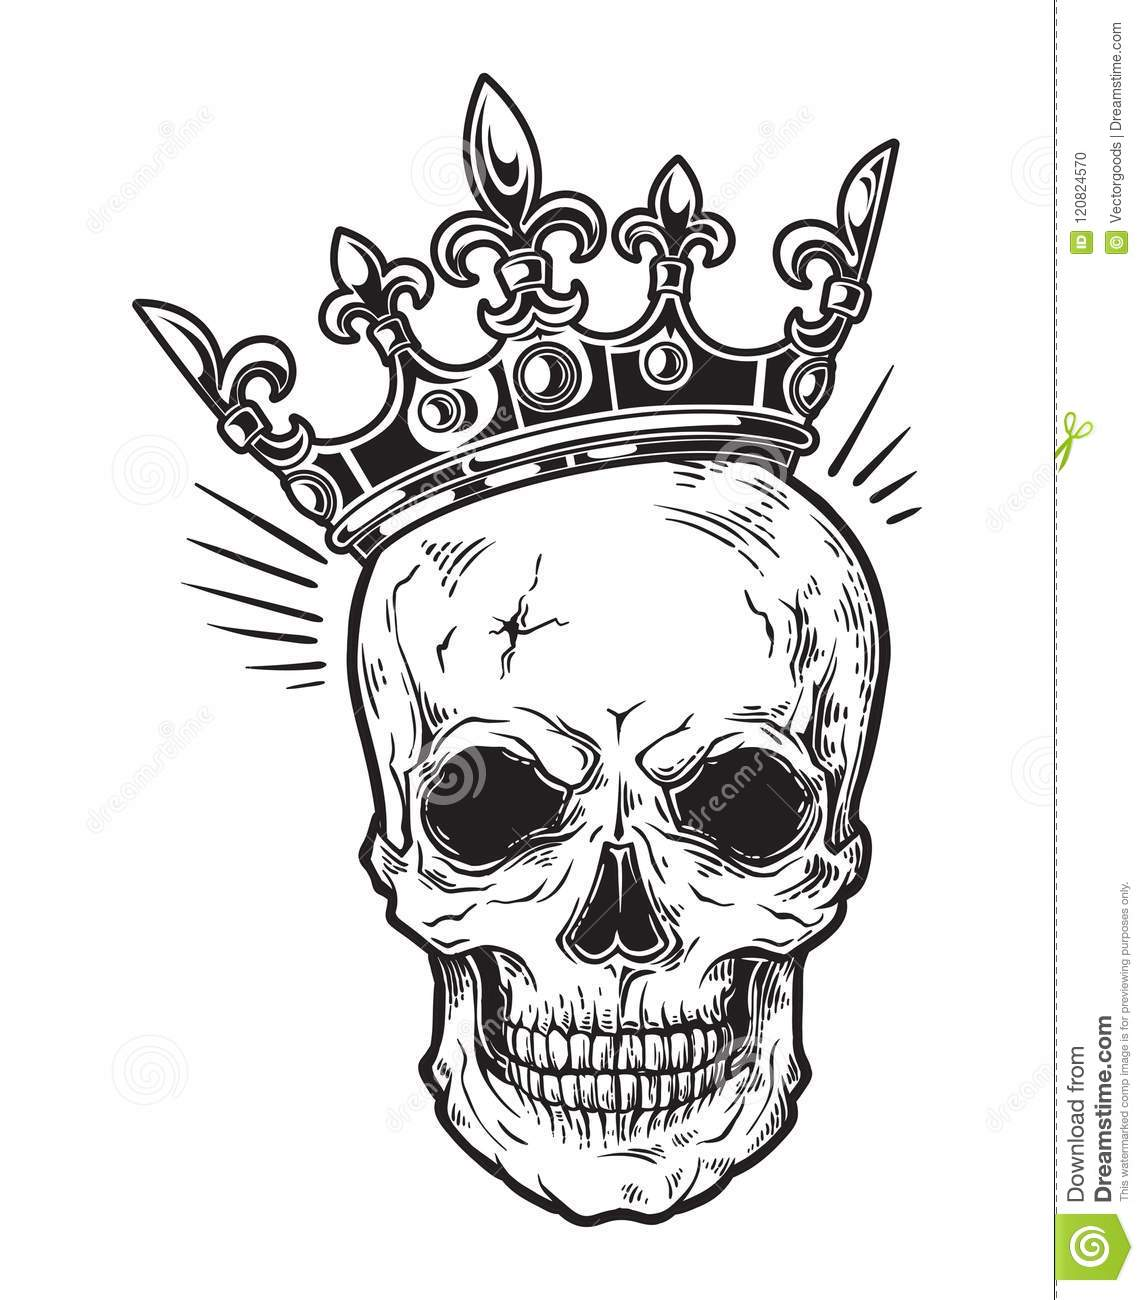 Human Skull With Crown For Tattoo Design Stock Vector